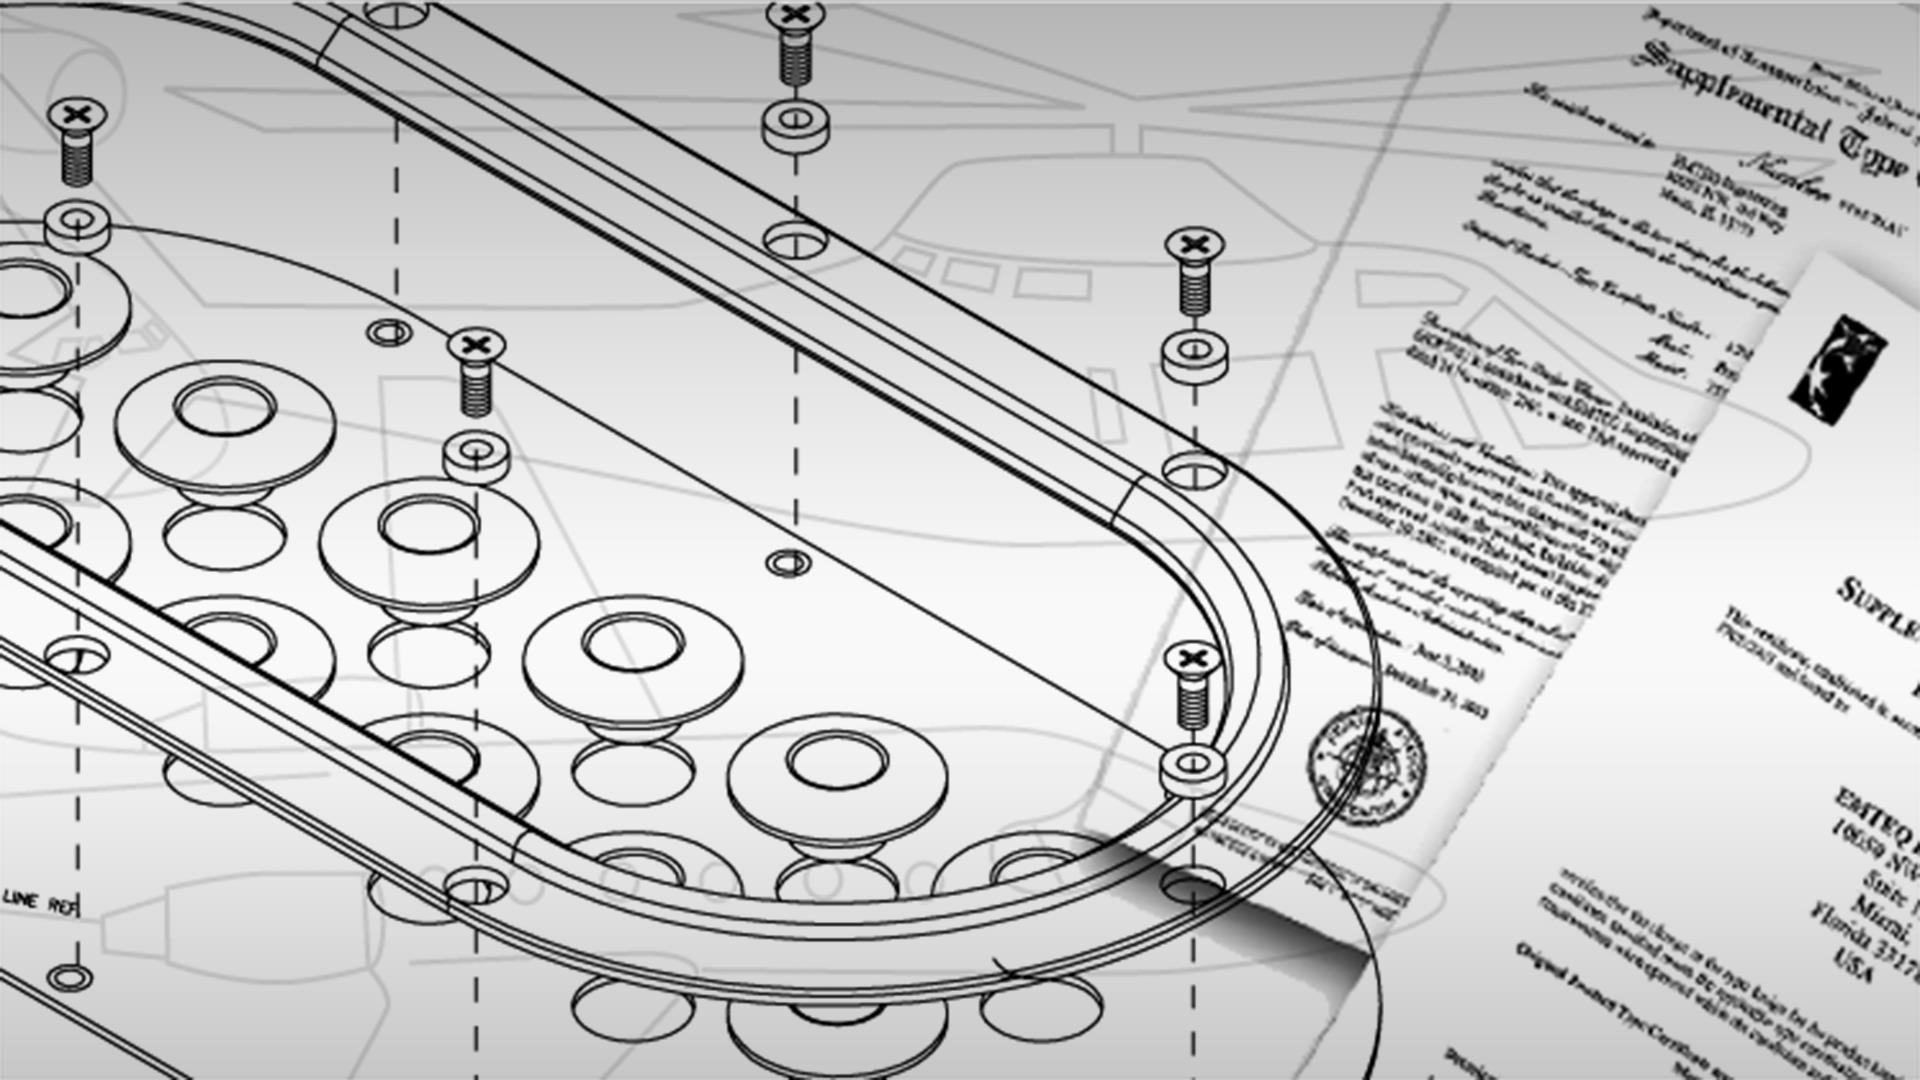 Engineering, design and certification documents